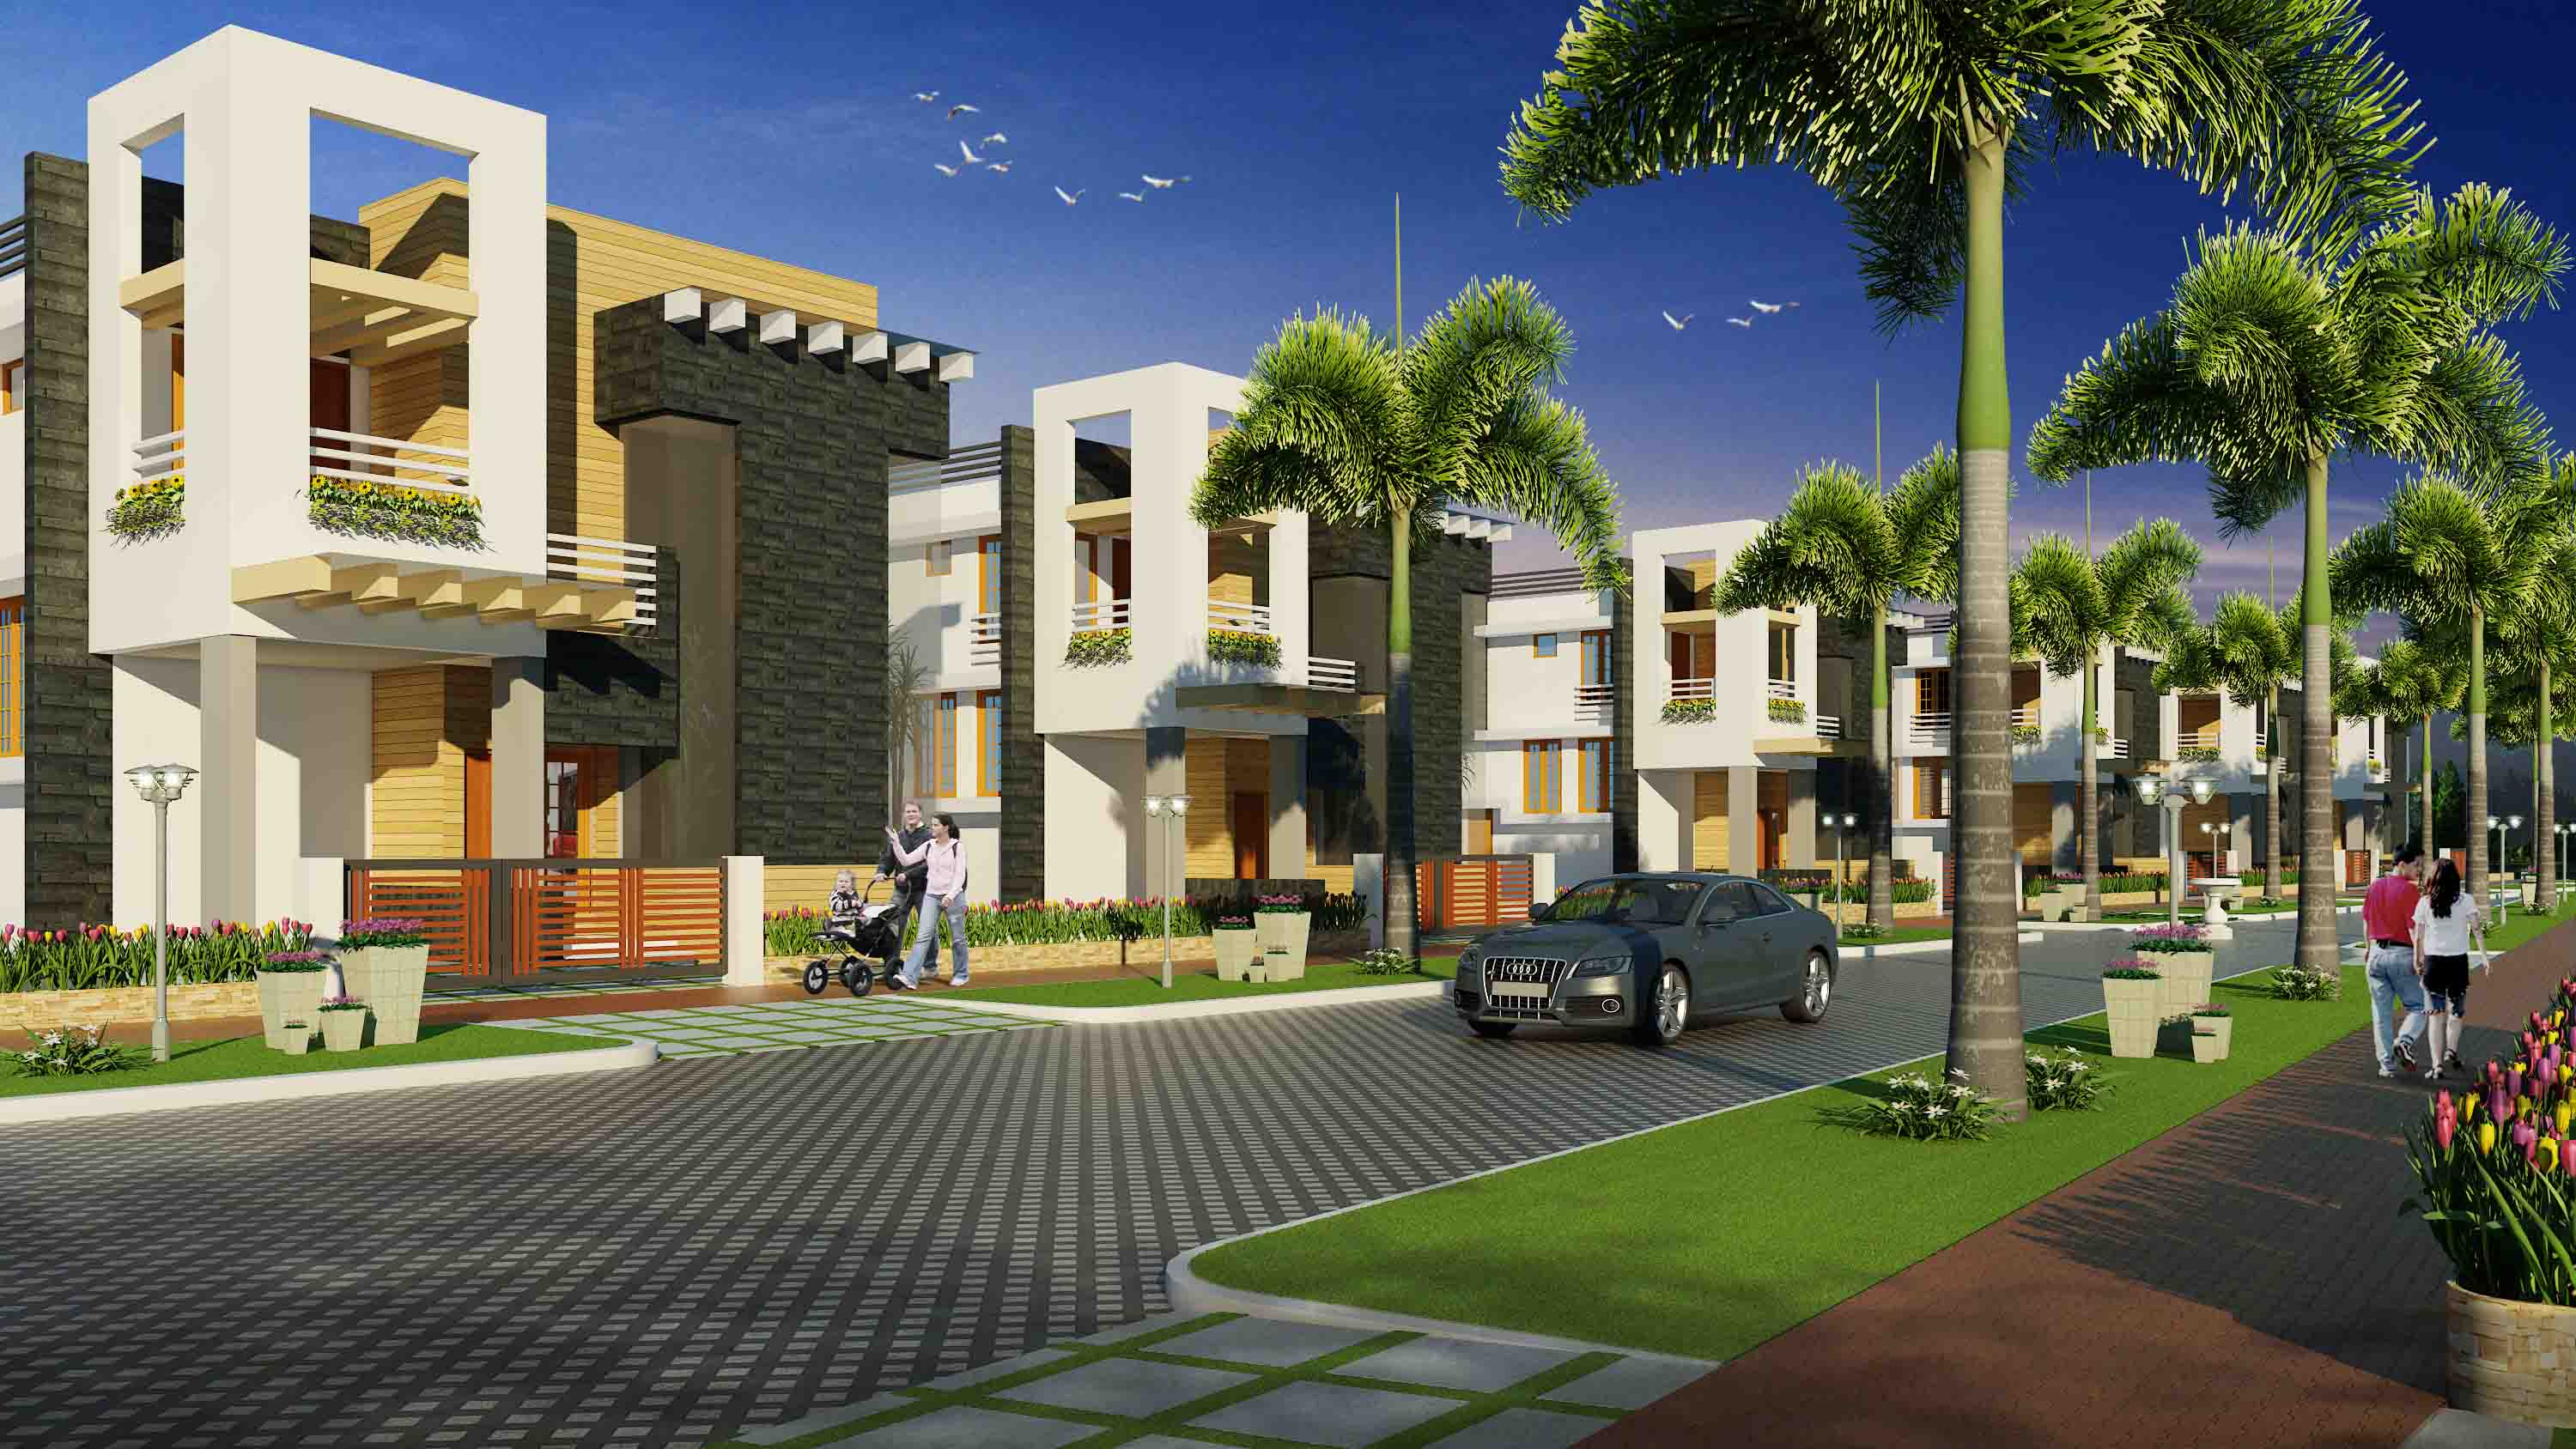 Aqua city shwas homes the most respected home builders for Villa builders